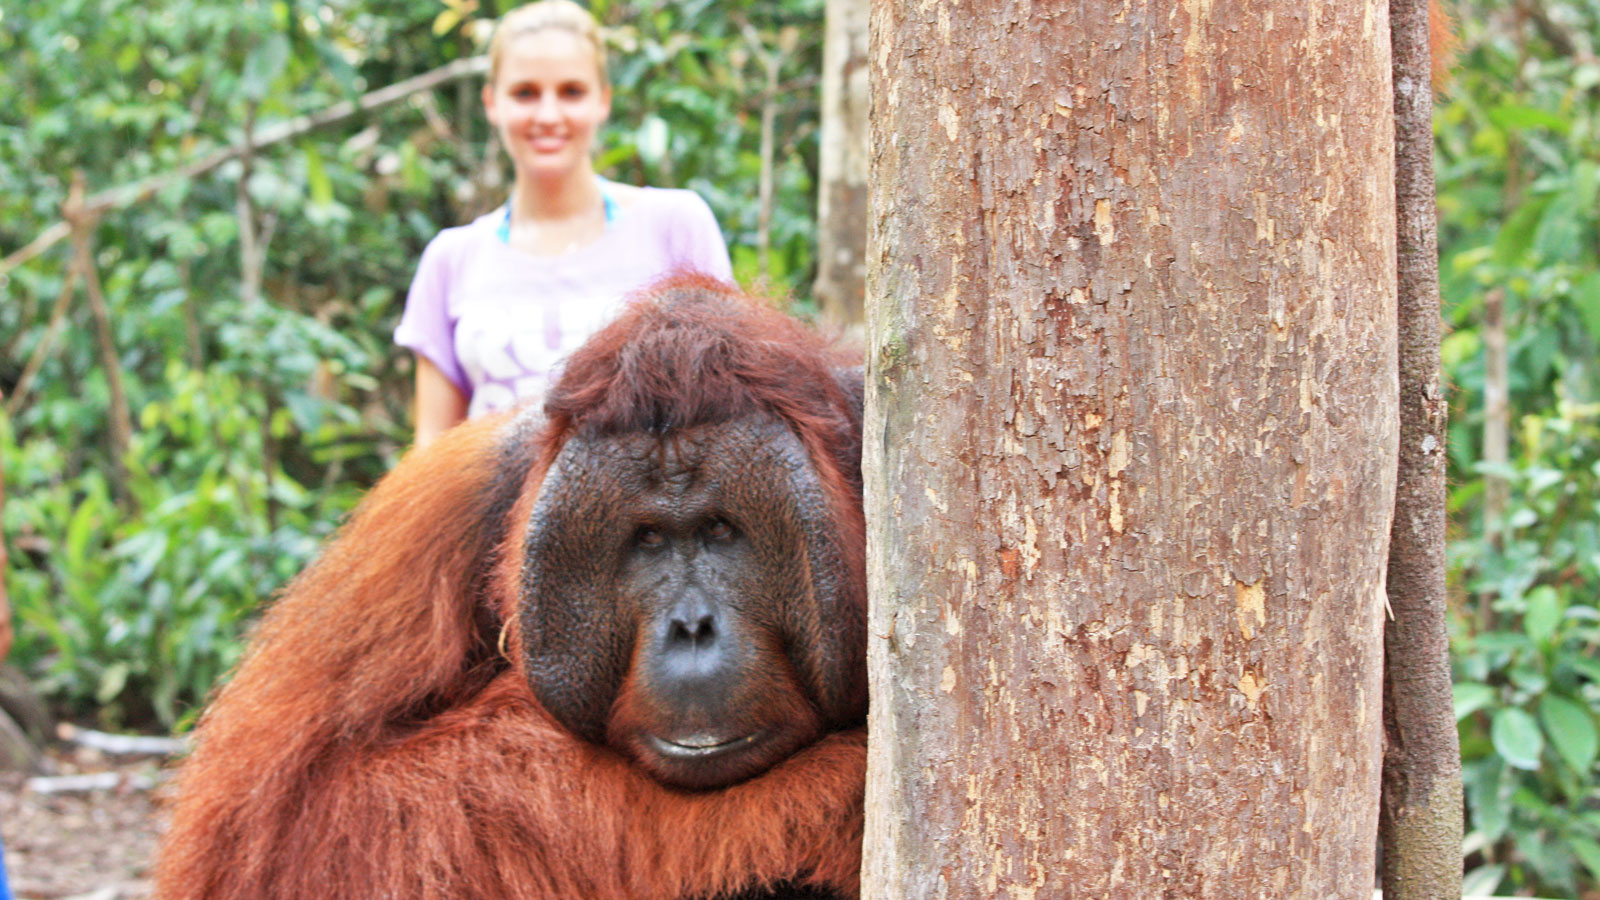 Kalimantan Orang-Utans Bootstour im Tanjung Puting Nationalpark traveljunkies